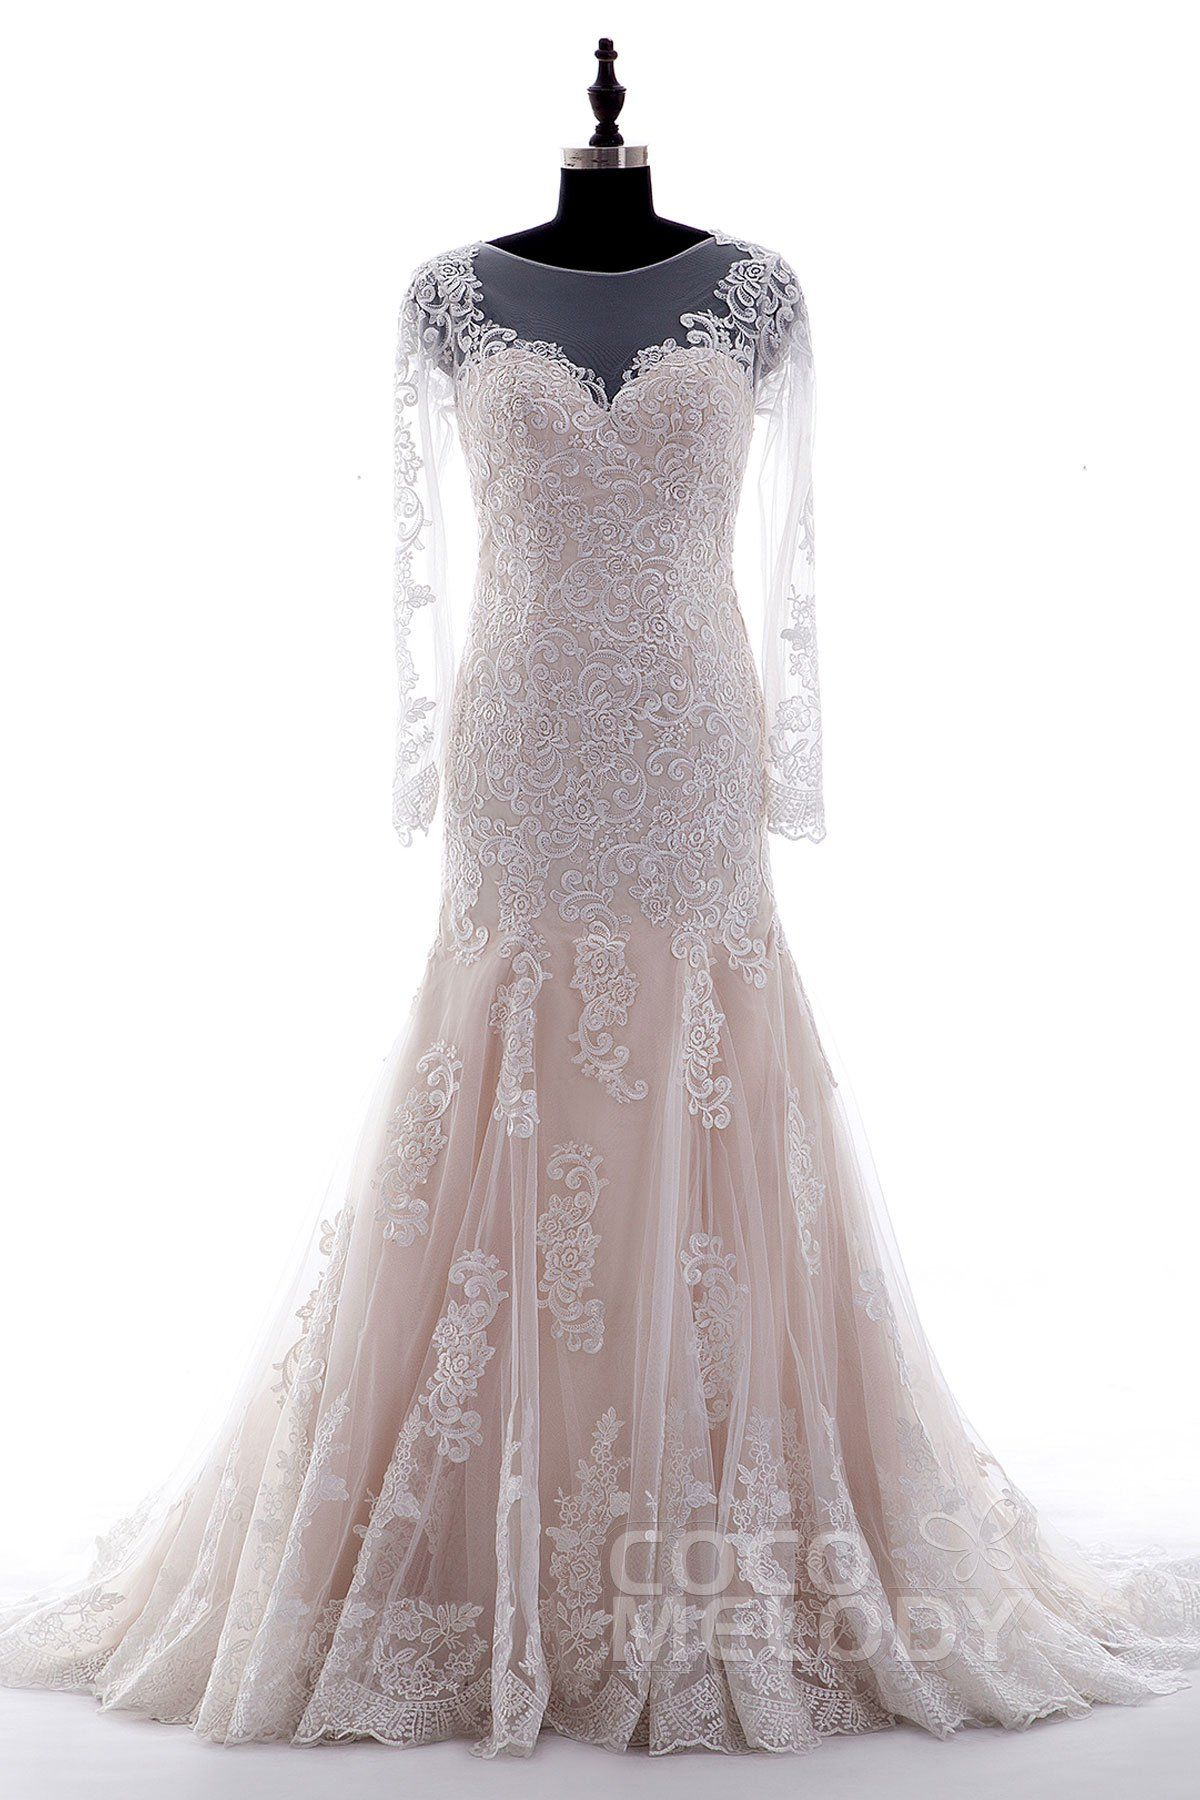 Long sleeve ivory wedding dress  Queenly TrumpetMermaid Illusion Natural Court Train Tulle and Lace